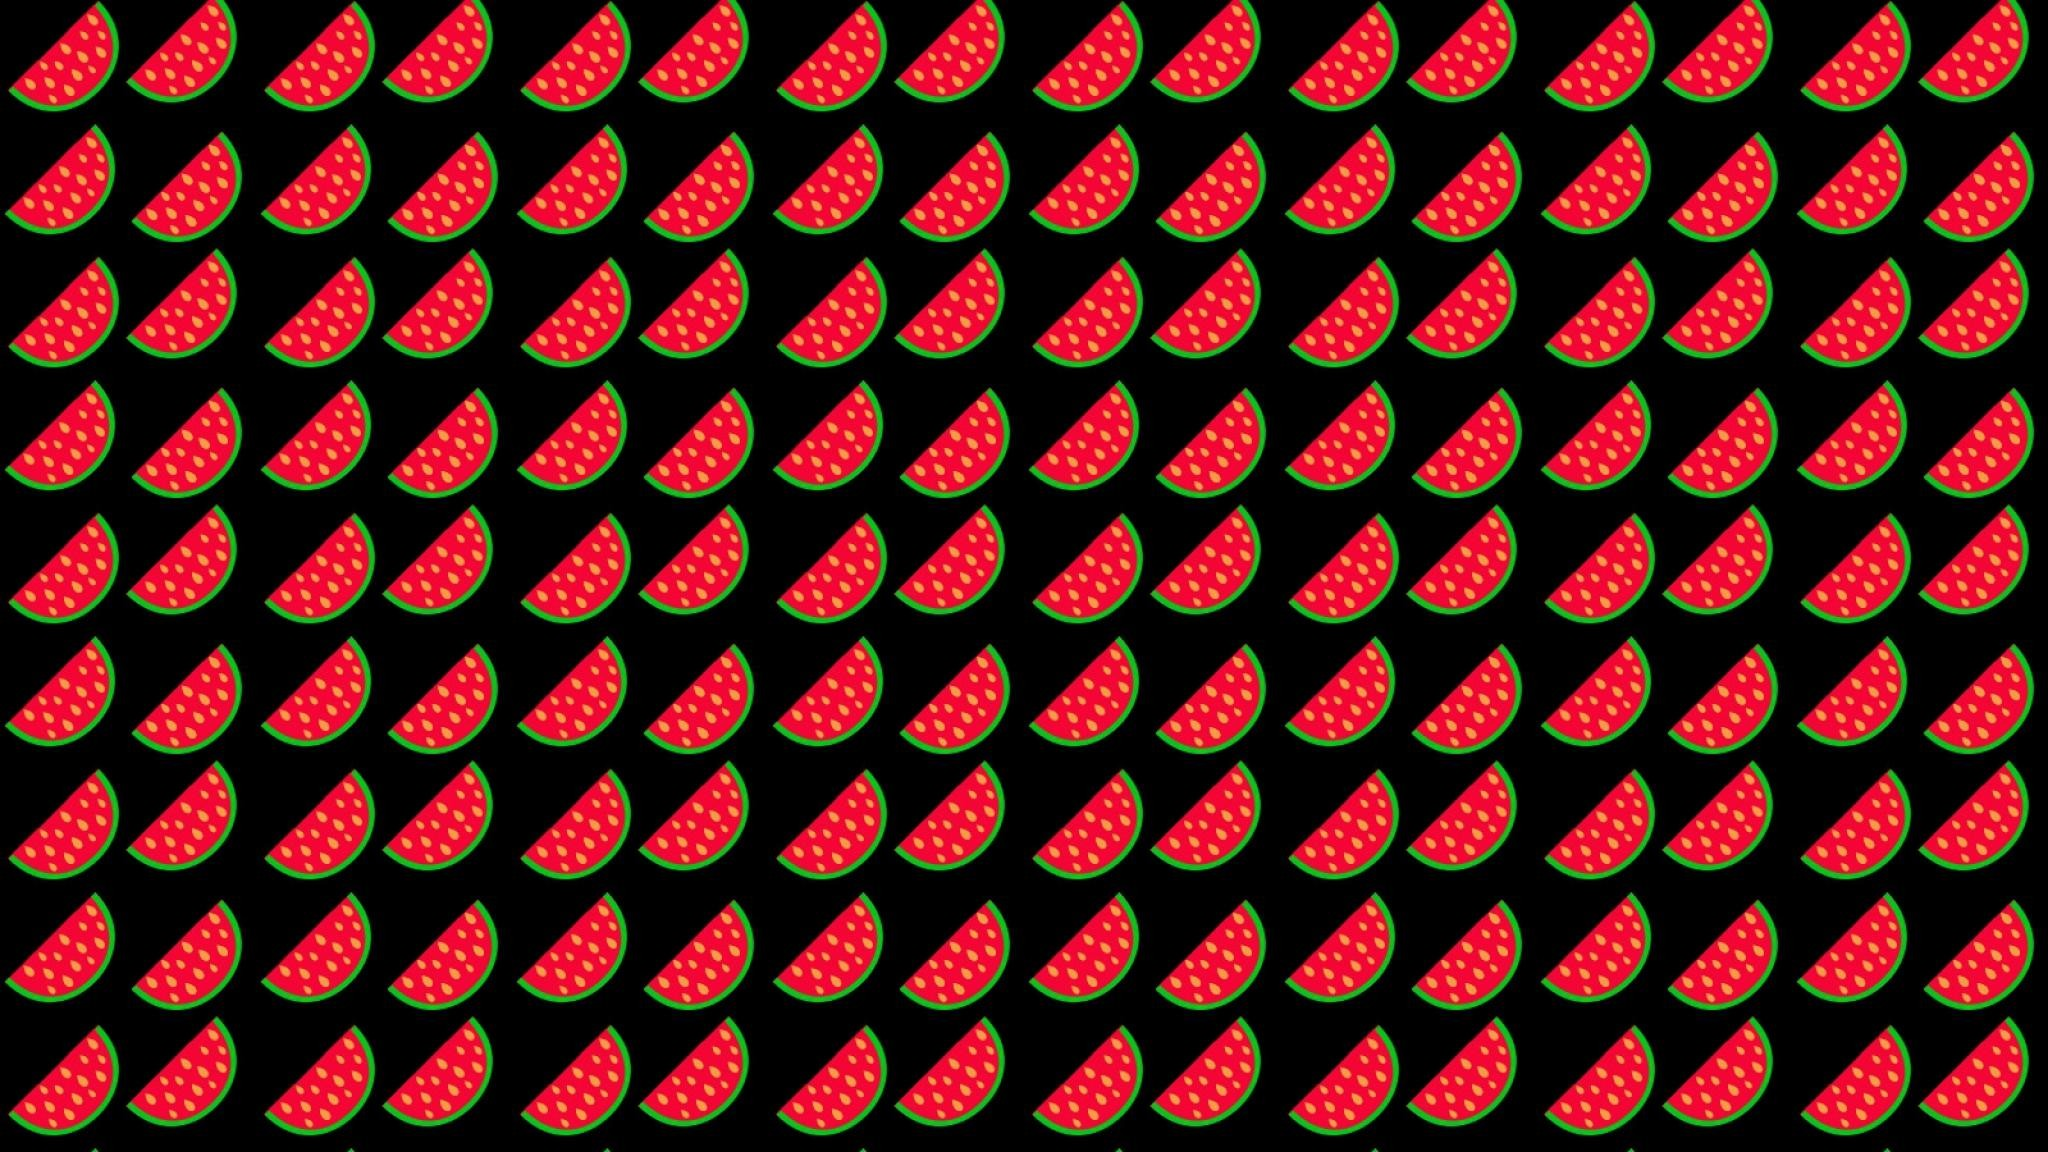 wallpaper.wiki-Watermelon-Images-PIC-WPE003765